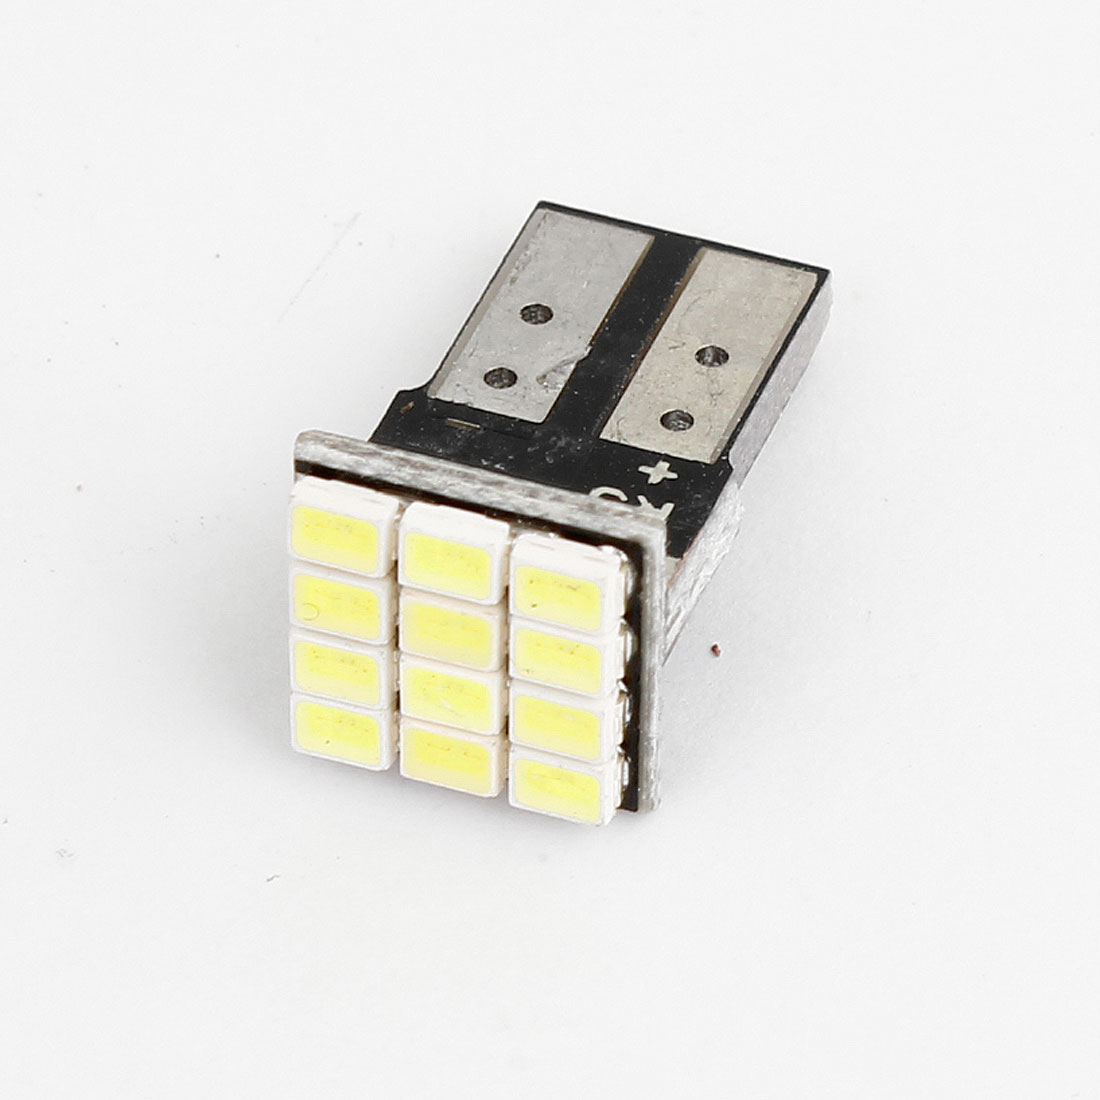 T10 W5W 12 White 1206 SMD LED Vehicle Car License Plate Lamp Bulb